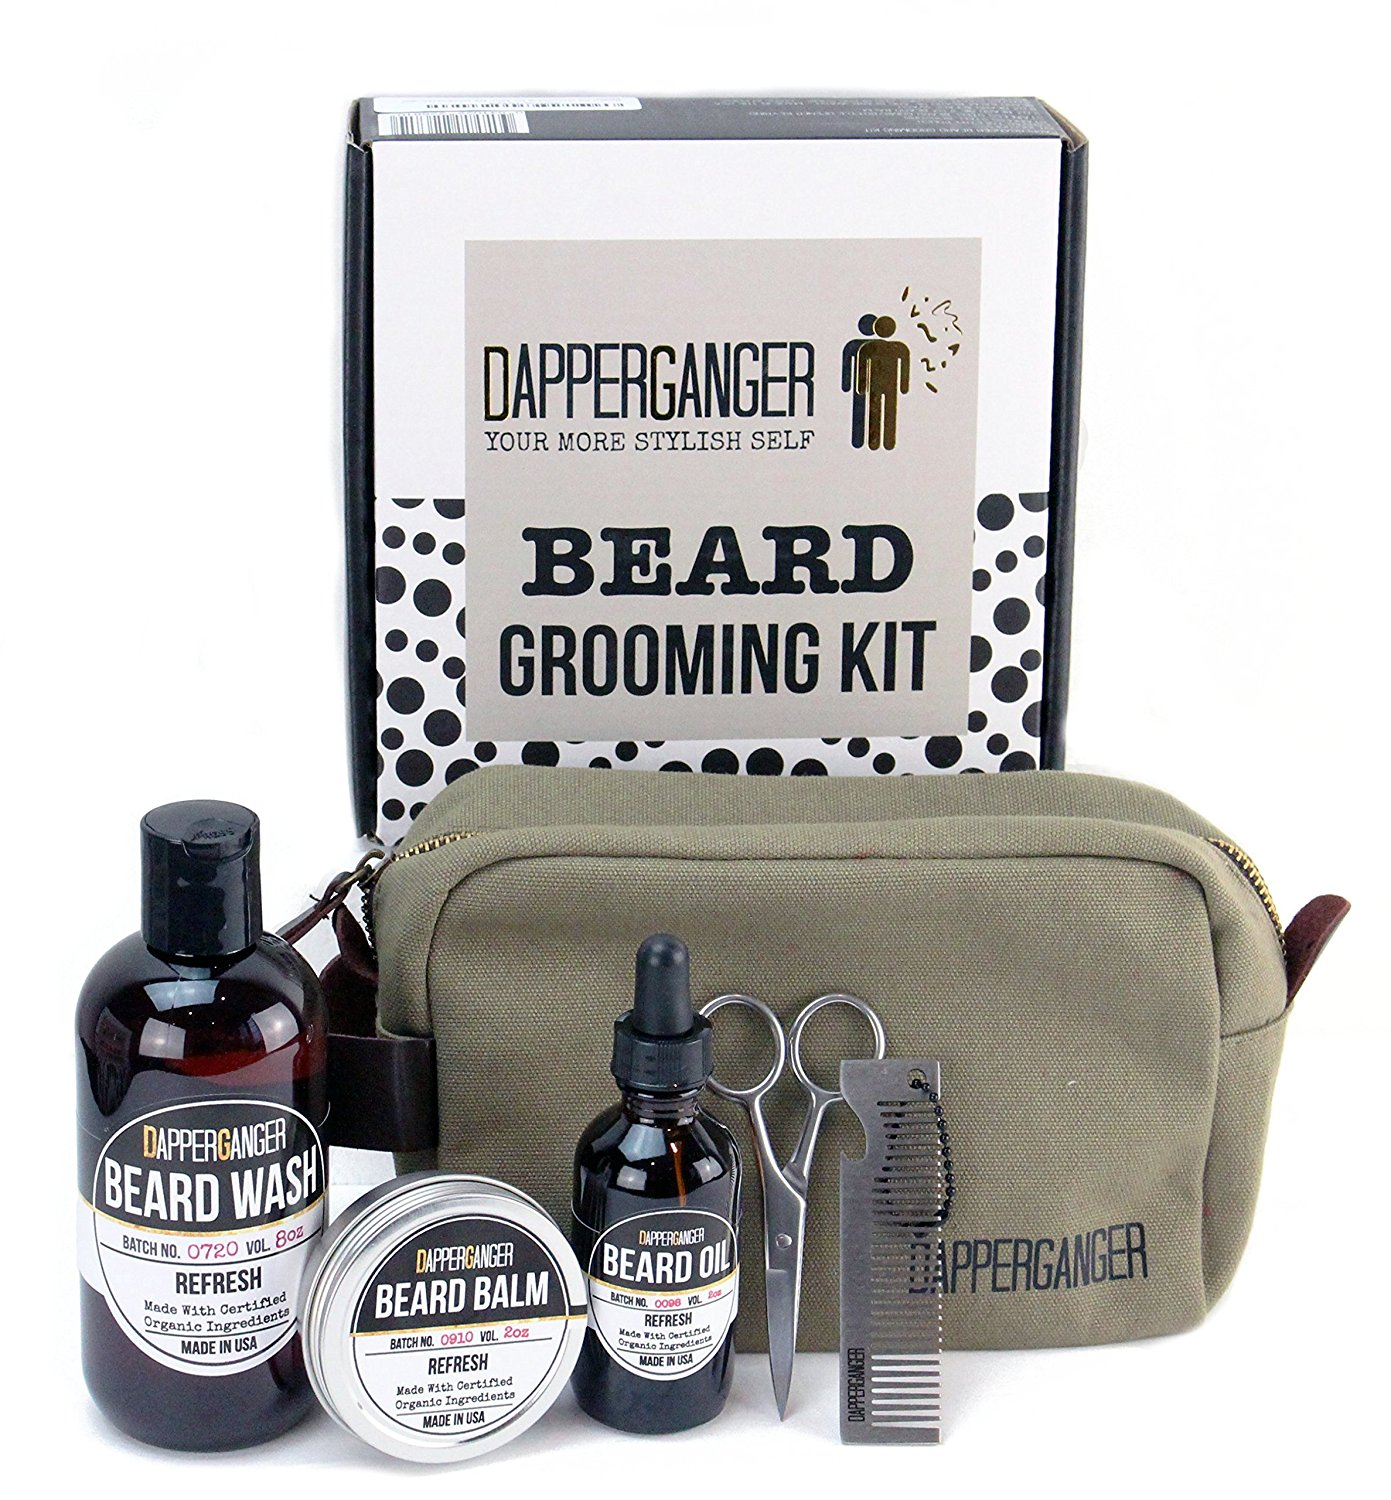 Beard Kit Grooming for Men By DapperGanger